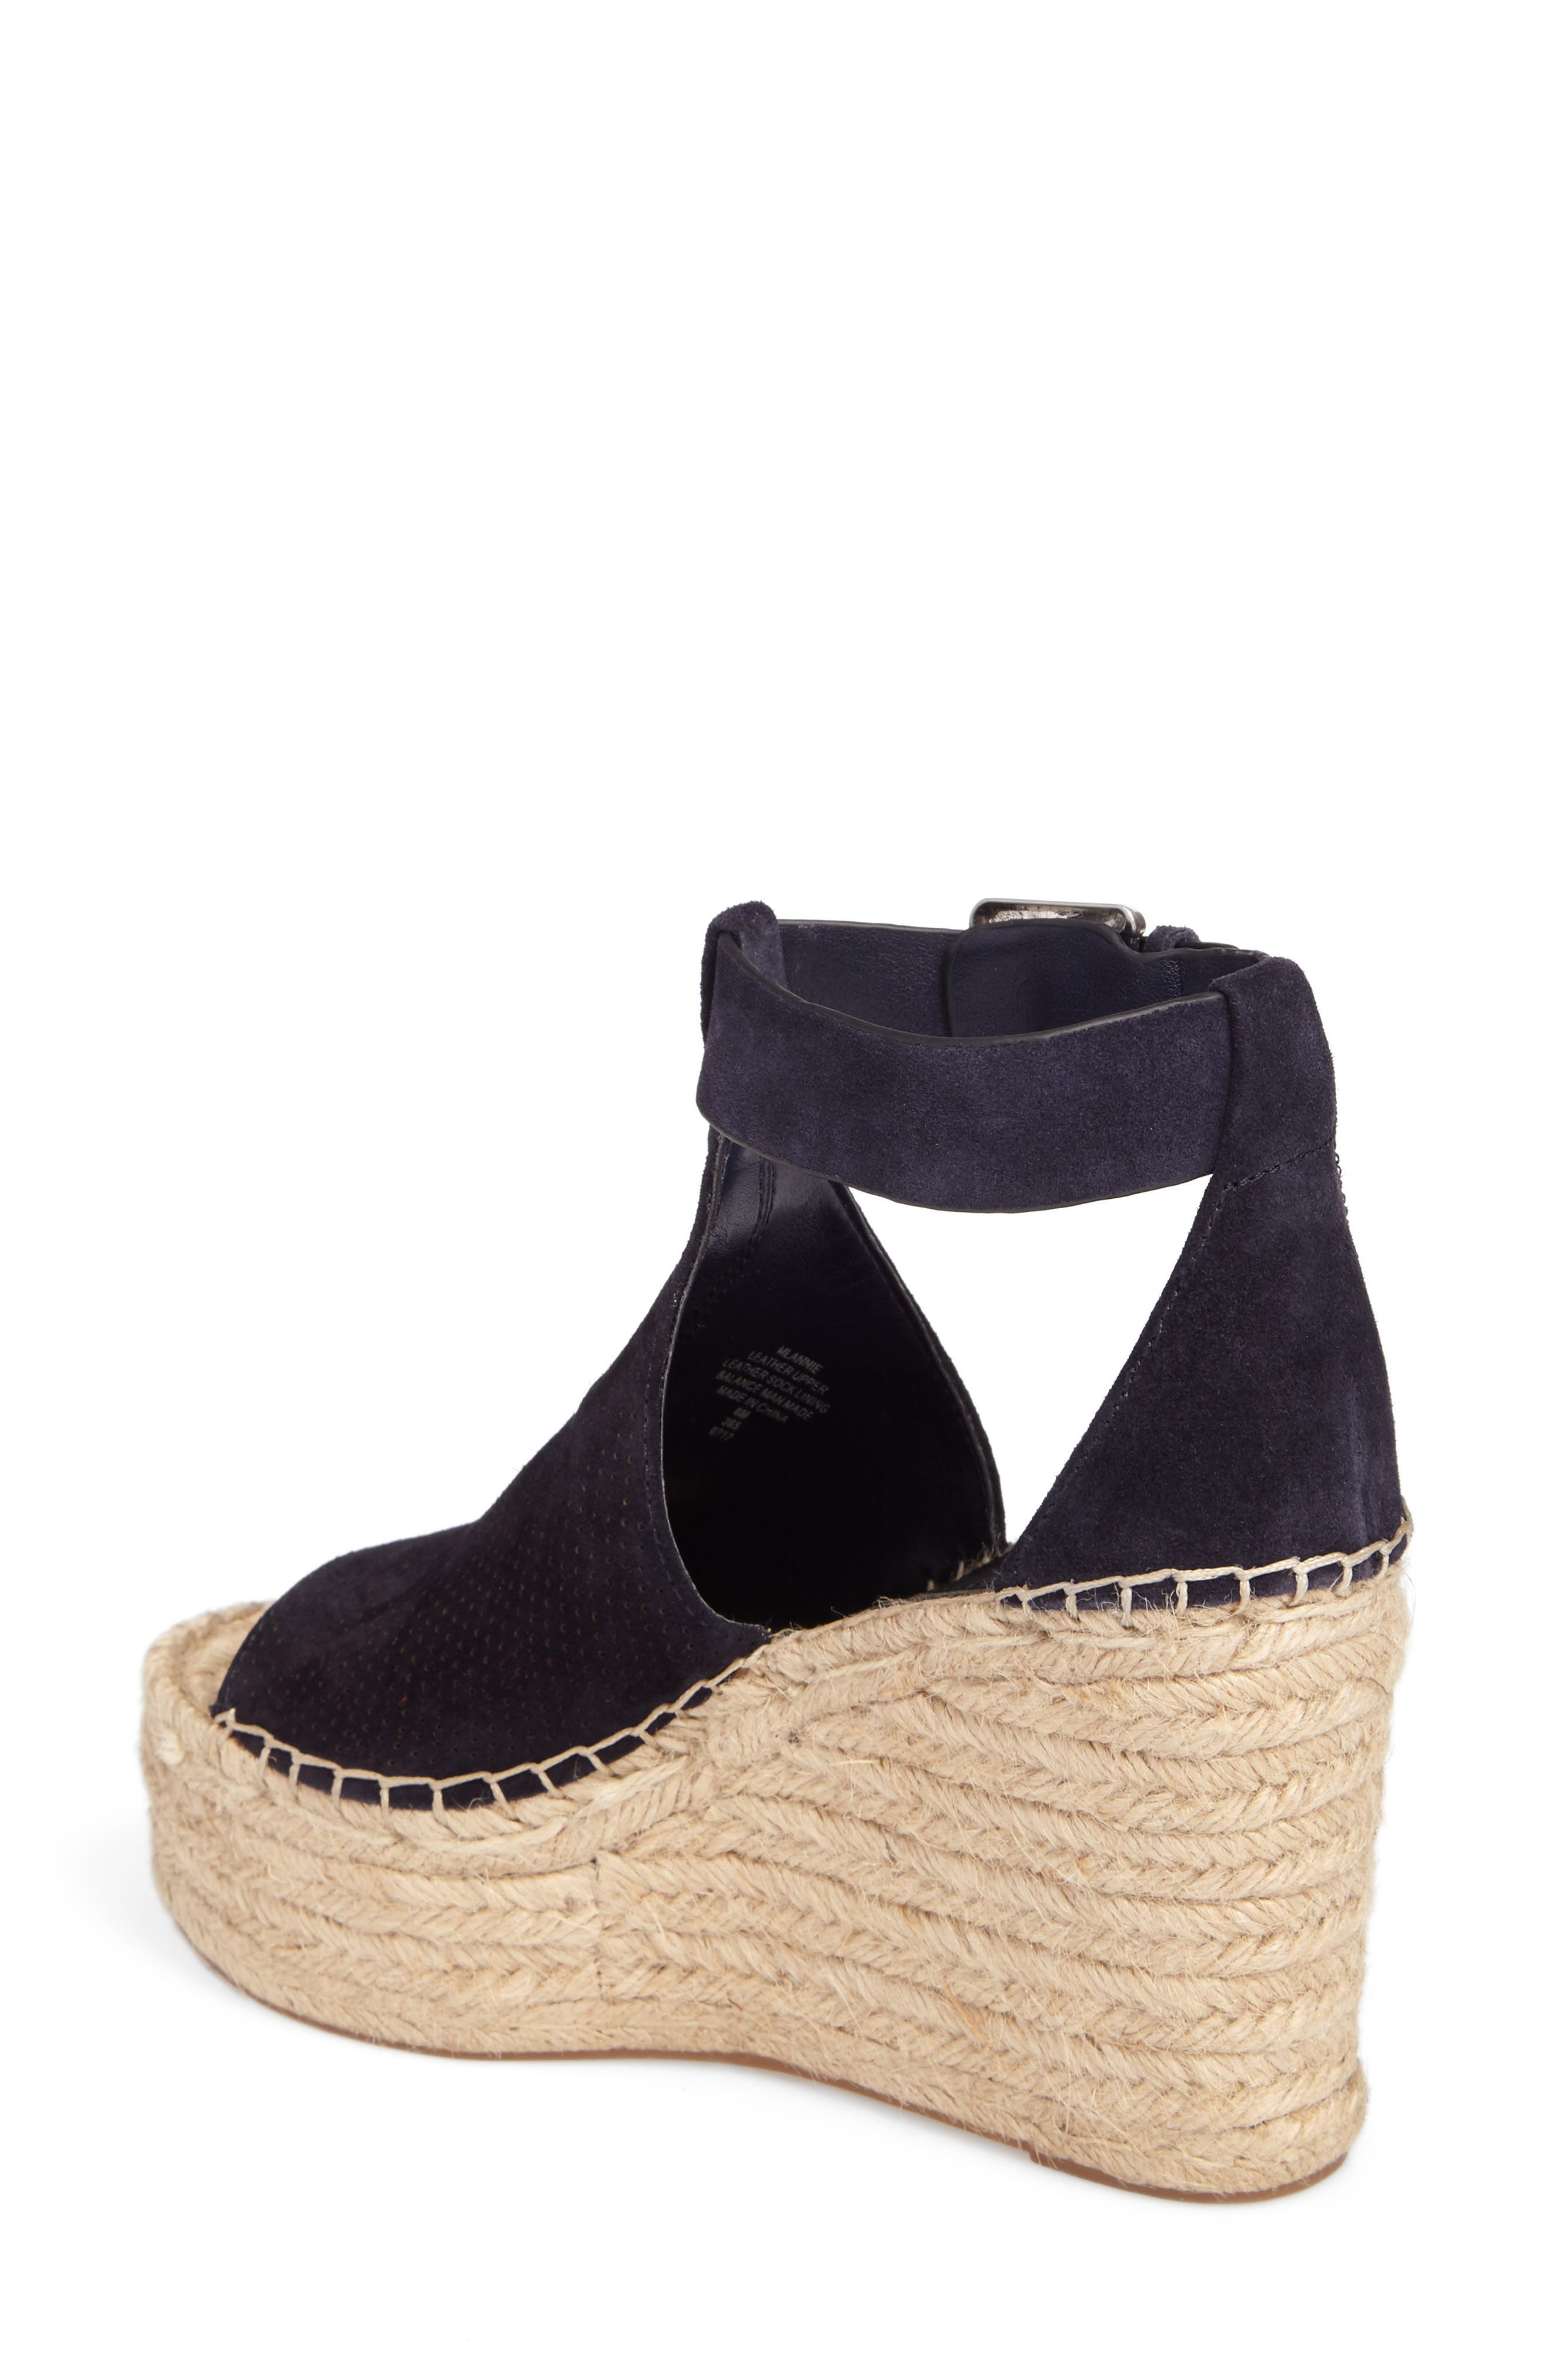 MARC FISHER LTD, Annie Perforated Espadrille Platform Wedge, Alternate thumbnail 2, color, 435